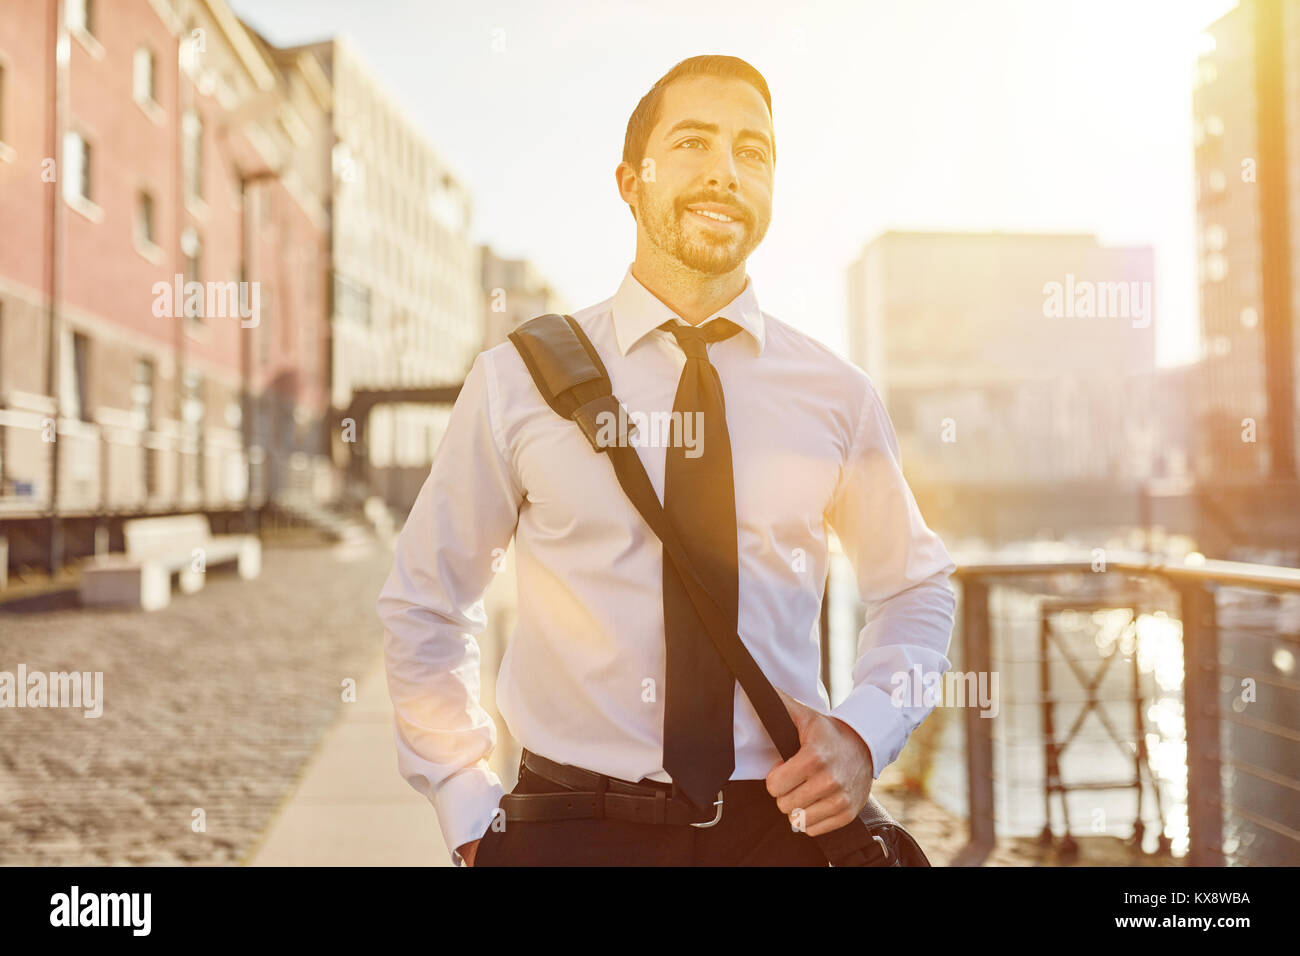 Relaxed business man on the way home smiles relaxed - Stock Image